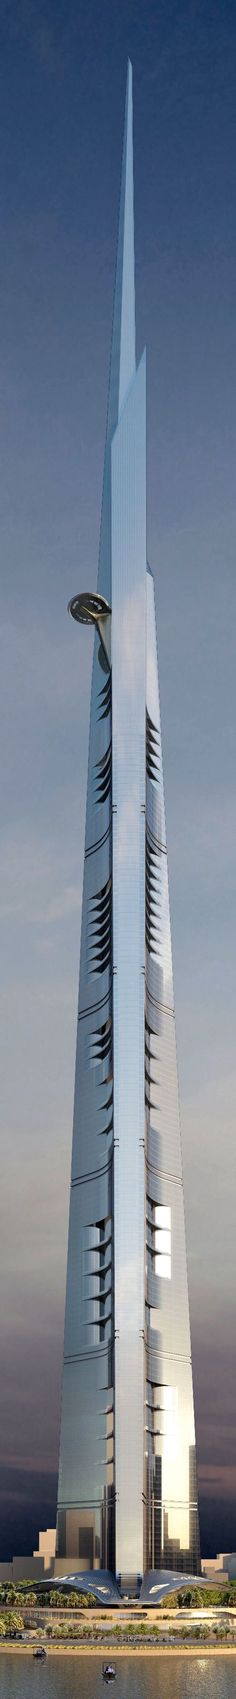 Kingdom Tower - Jeddah, Saudi Arabia  1000 m